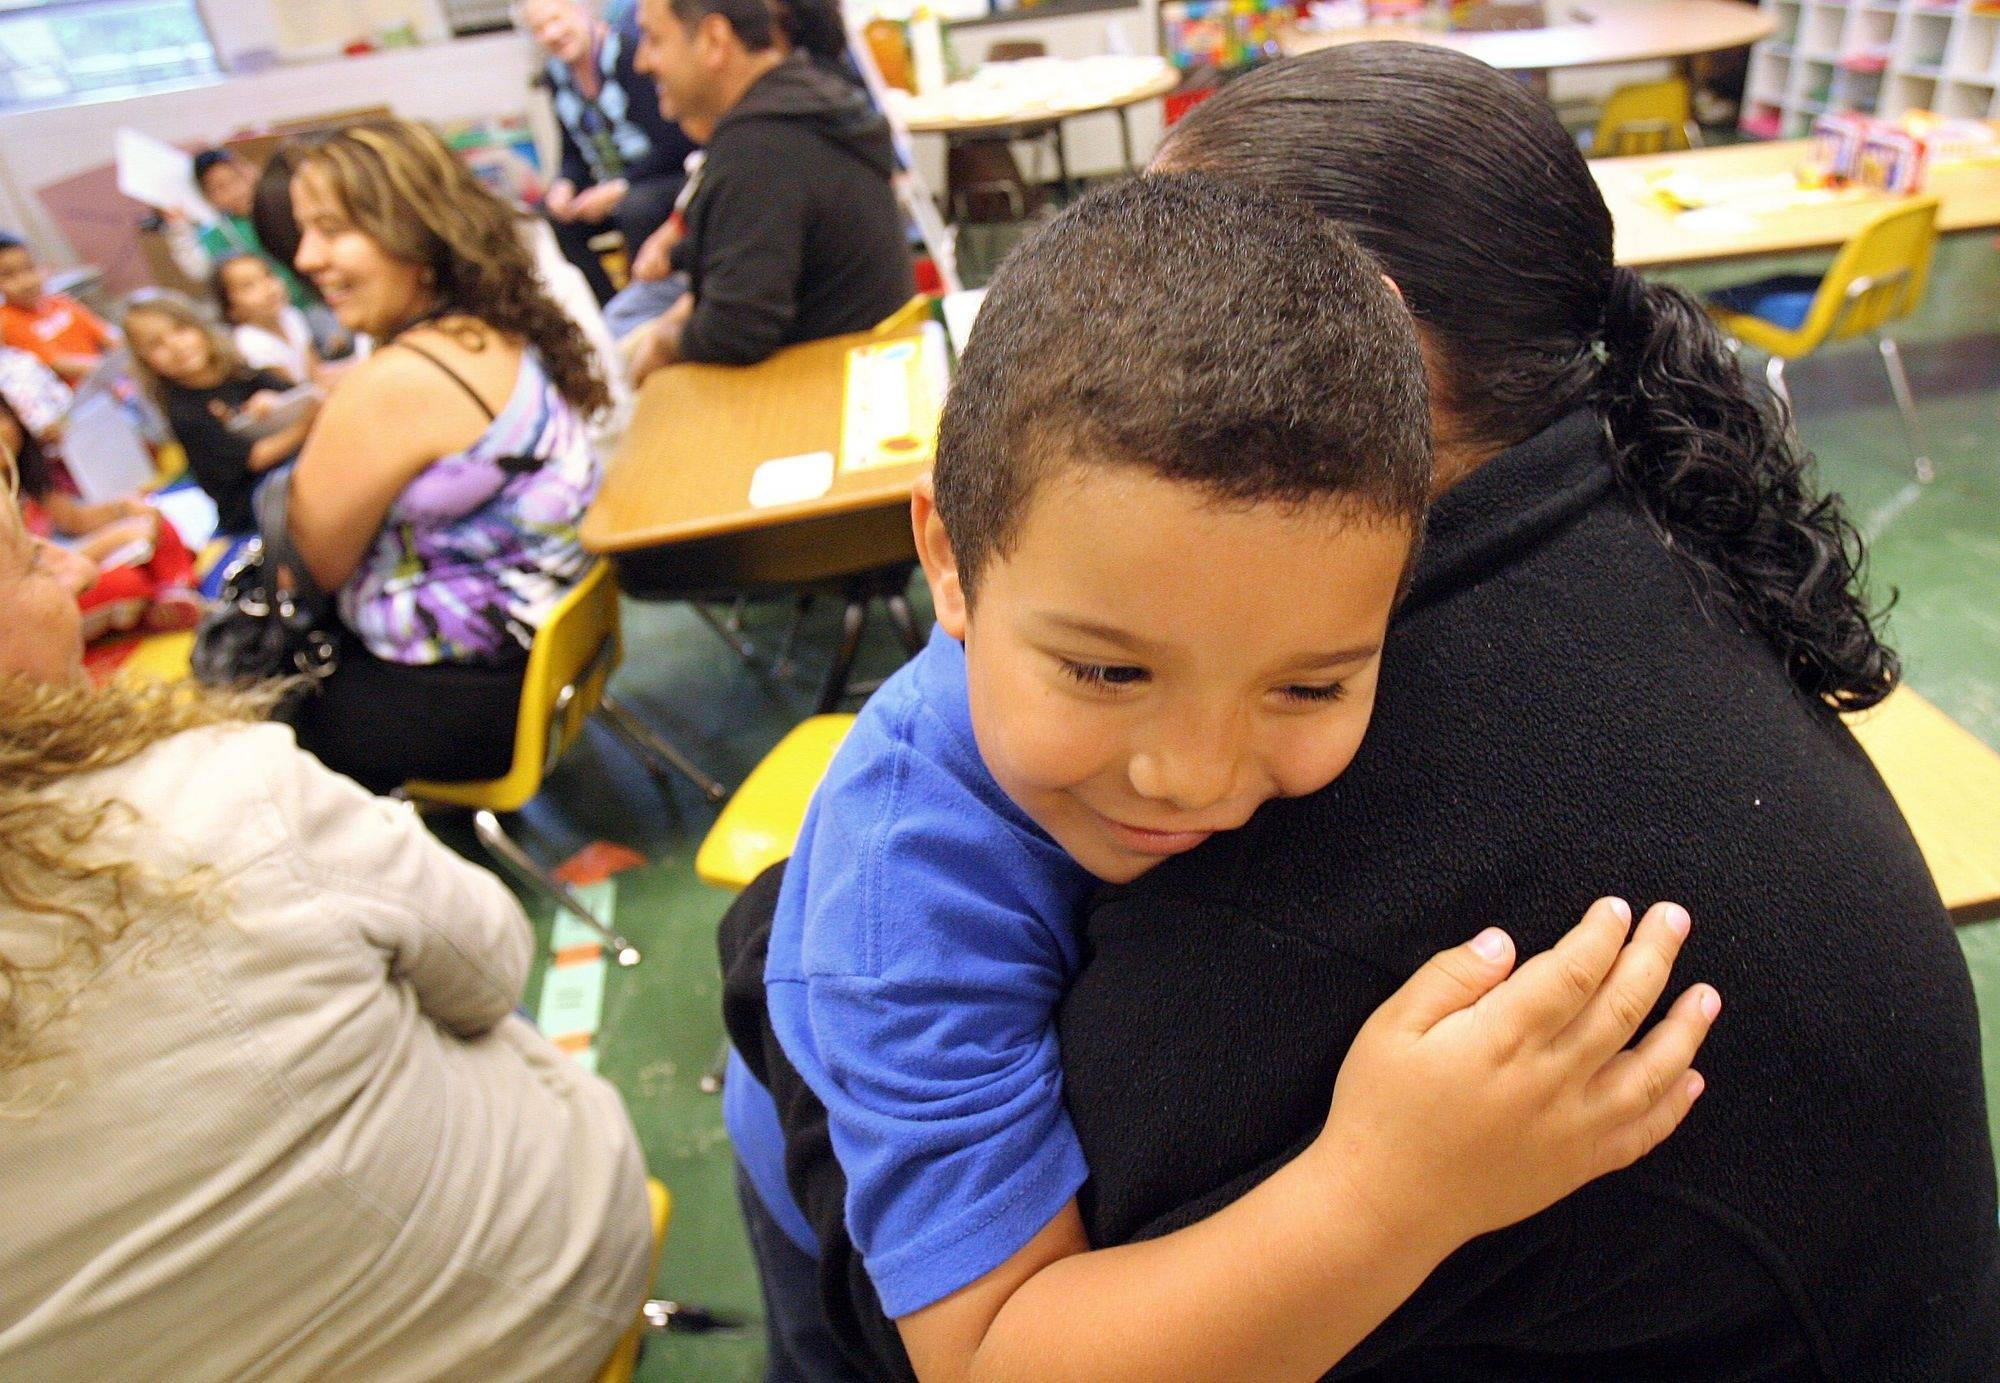 Jose Gonzalez of Mundelein is so happy his mother, Maria, came to the Fairhaven School Mother's Day tea party Friday.